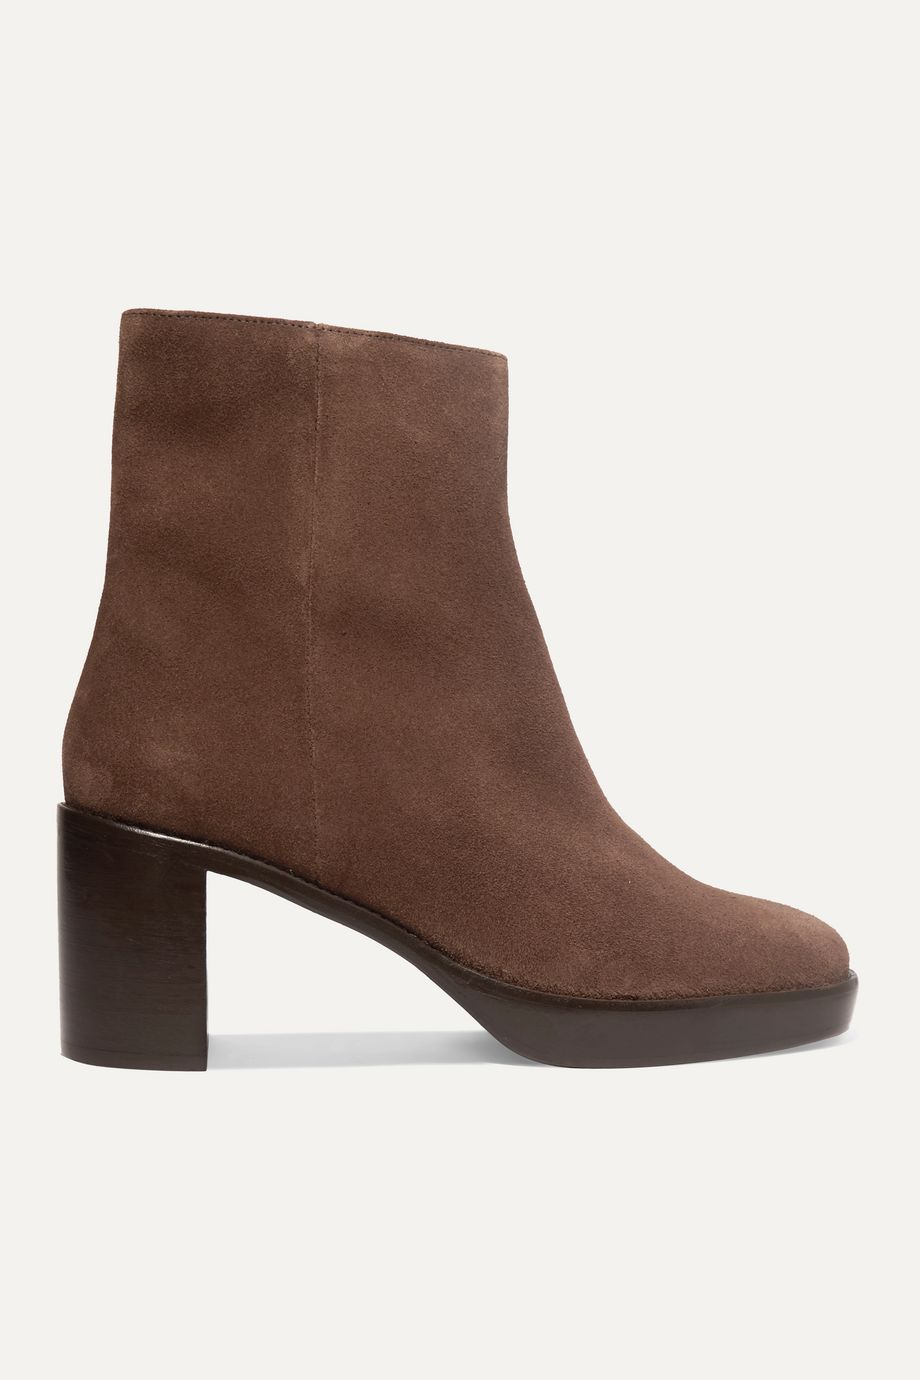 BY FAR Ellen suede platform ankle boots